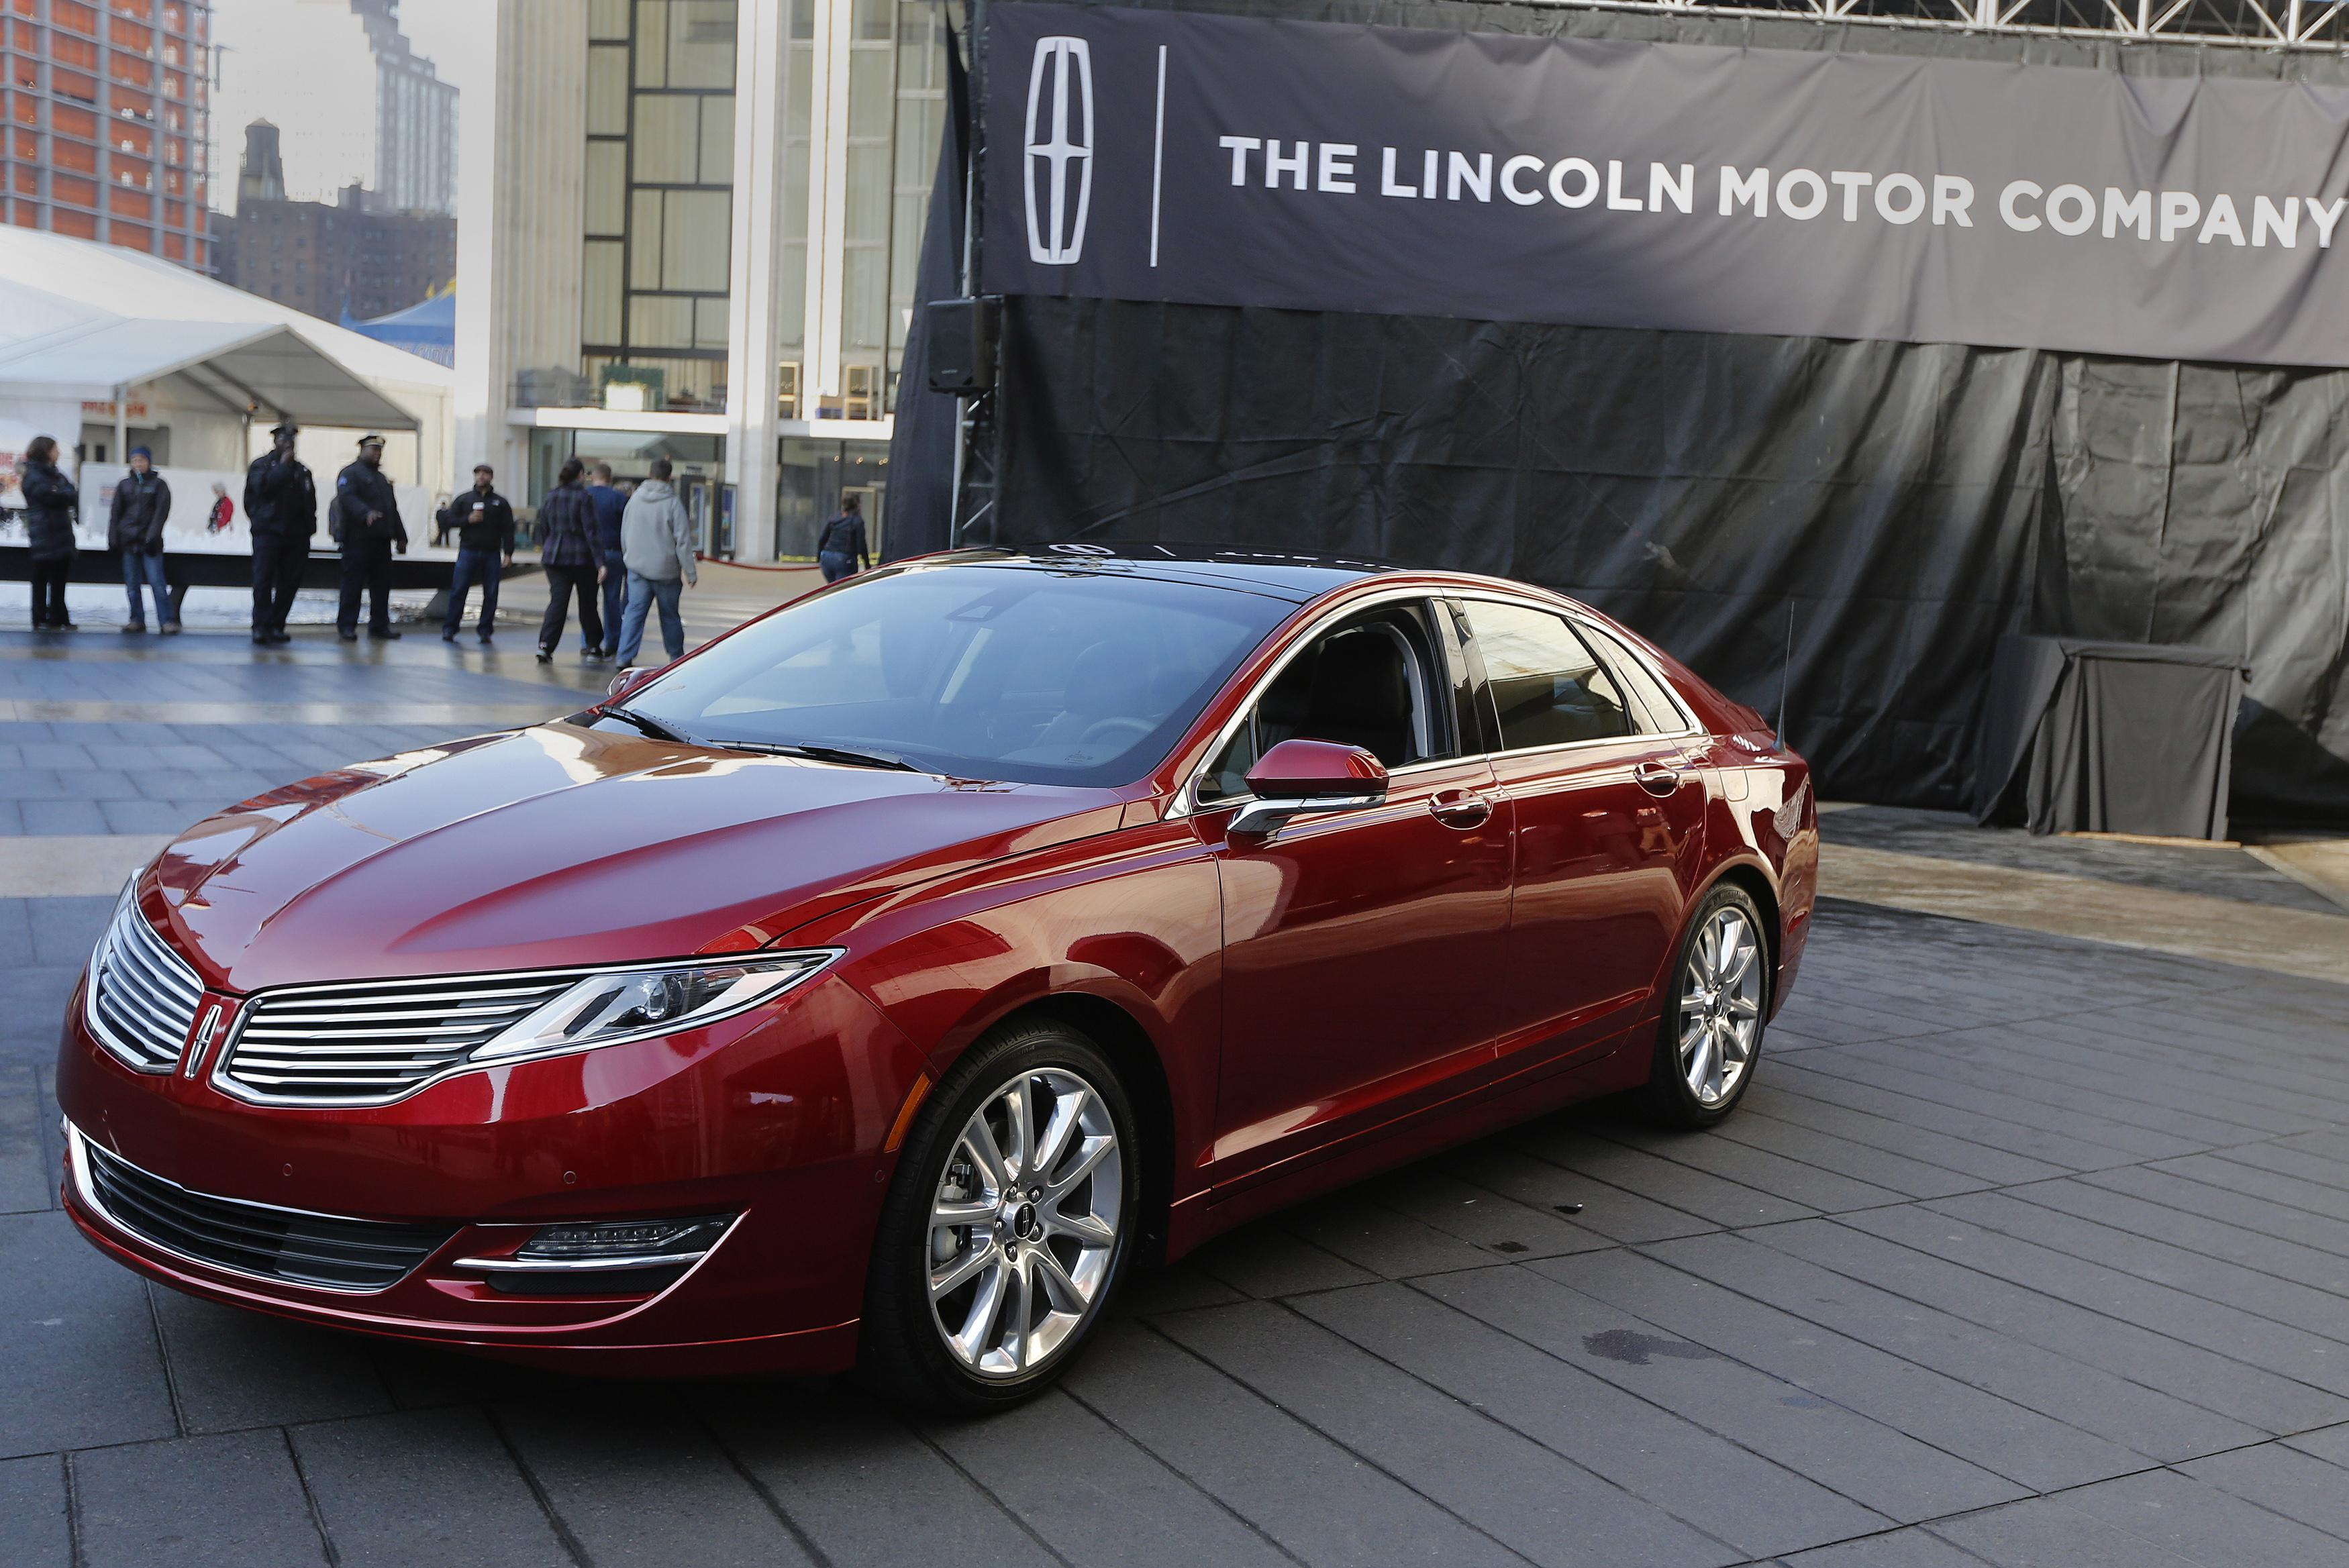 Ford recalls 1.4 million Fusions, Lincoln MKZs because steering wheels can detach